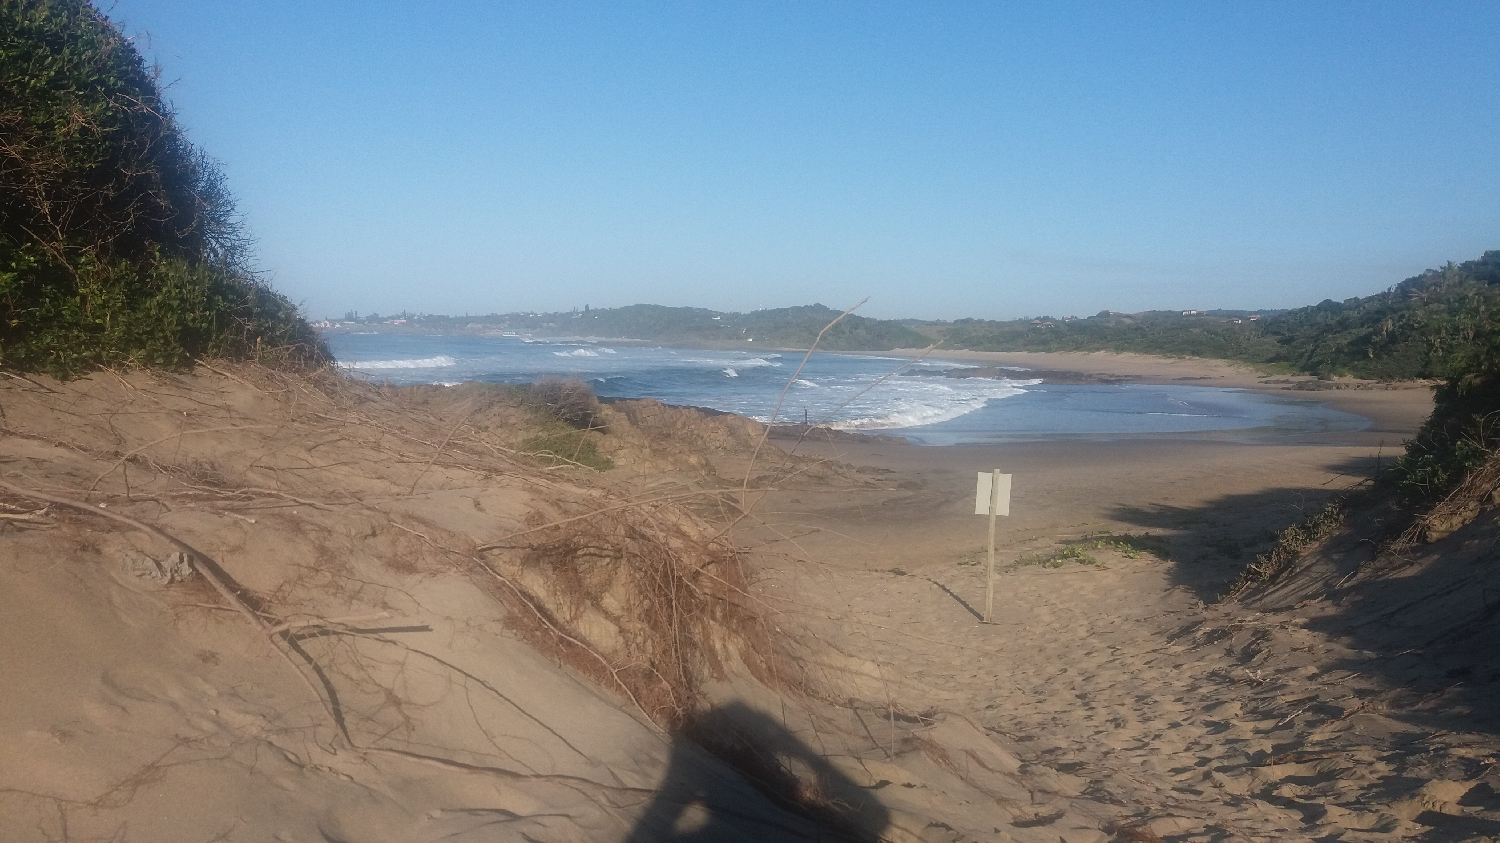 drakes-bay-north-dune-rehab-plan-site-pictures